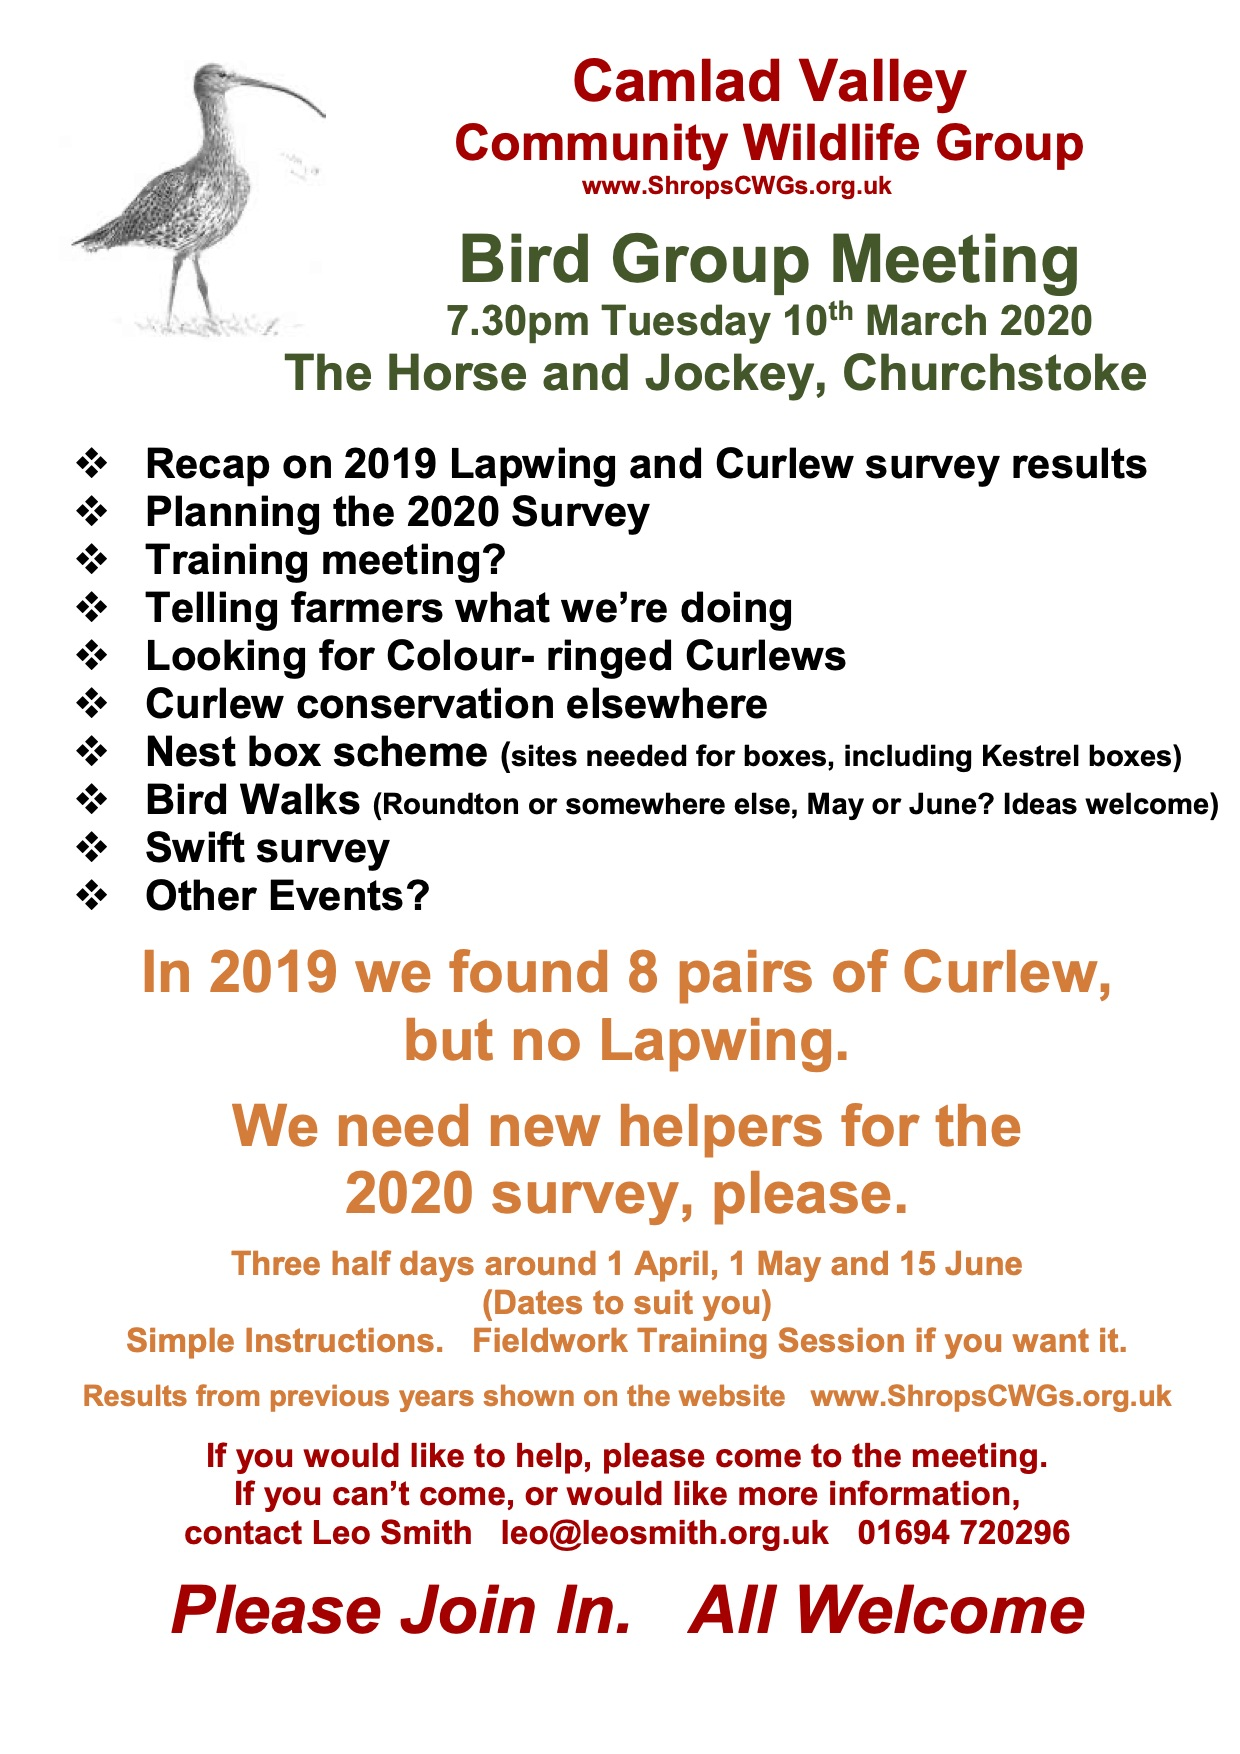 Camlad Valley CWG Bird Group 10 March 2020